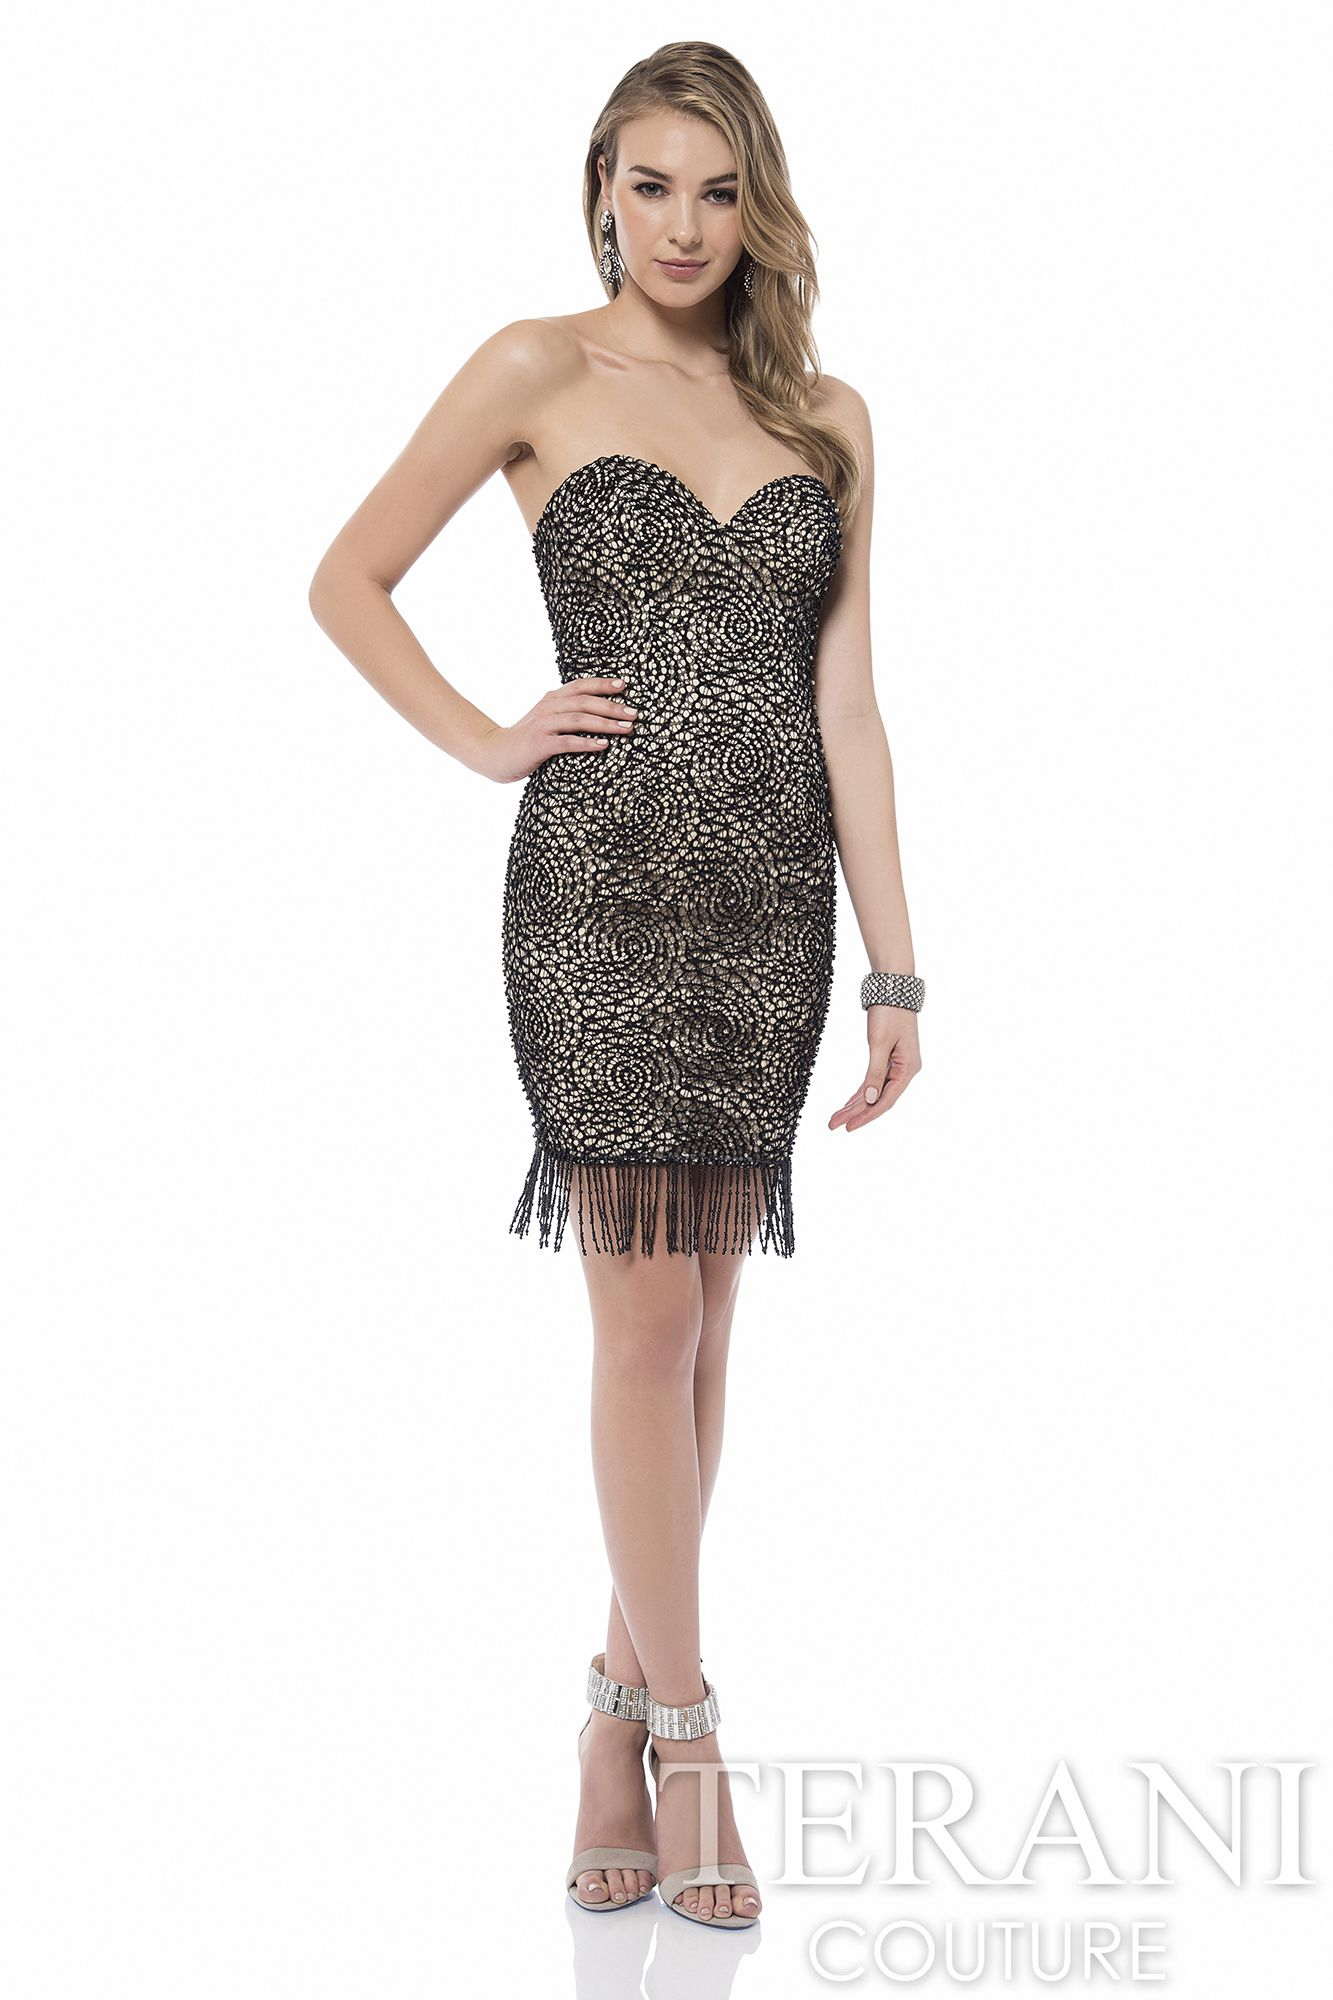 Terani Couture - 2016 Cocktail Dress Style: 1611C0029 #cocktail ...